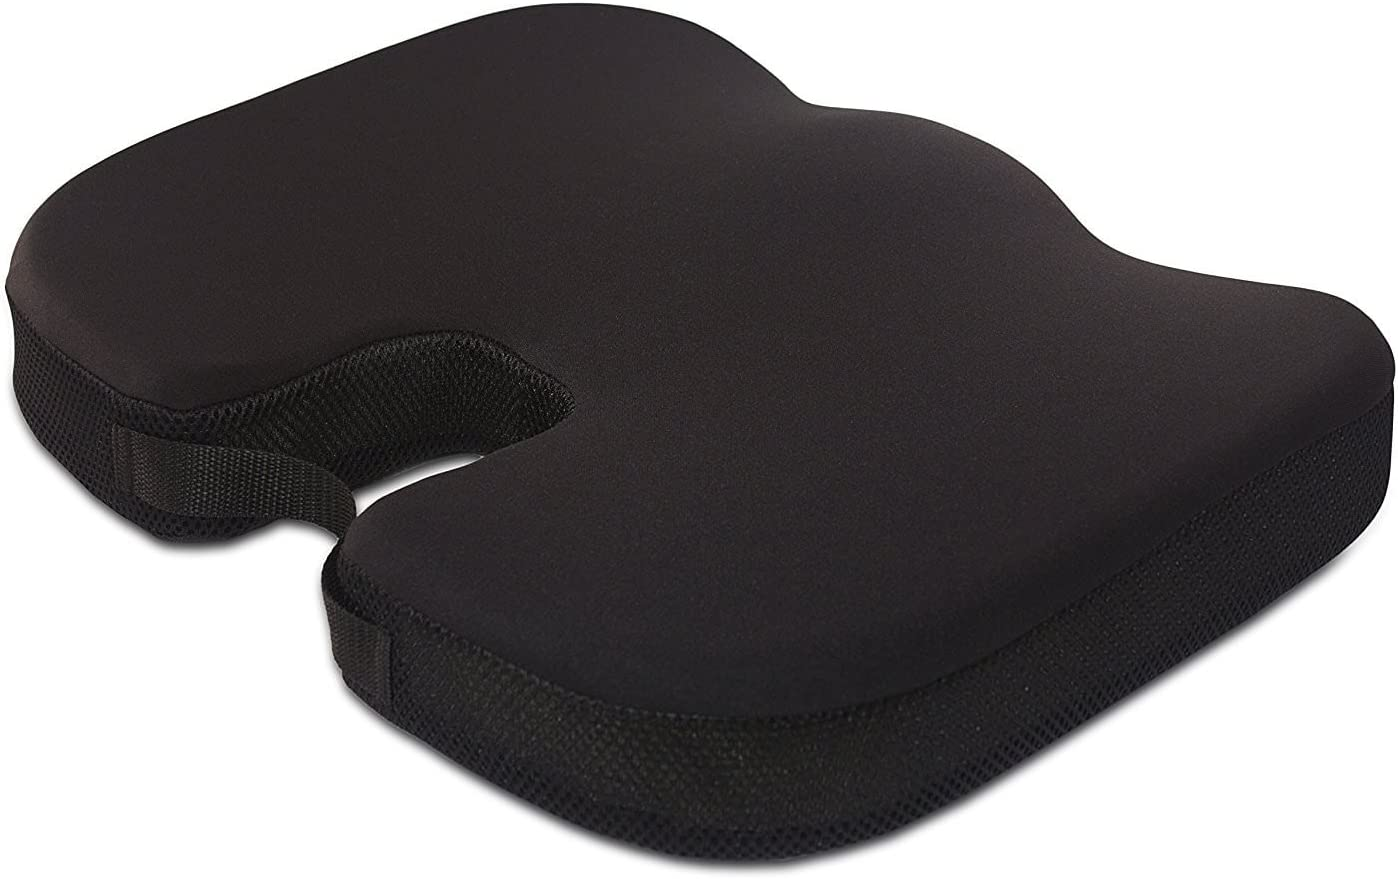 Medical Seat Cushion, Office Chair Coccyx Cushion (Certified Foam Firm Pillow): Health & Personal Care